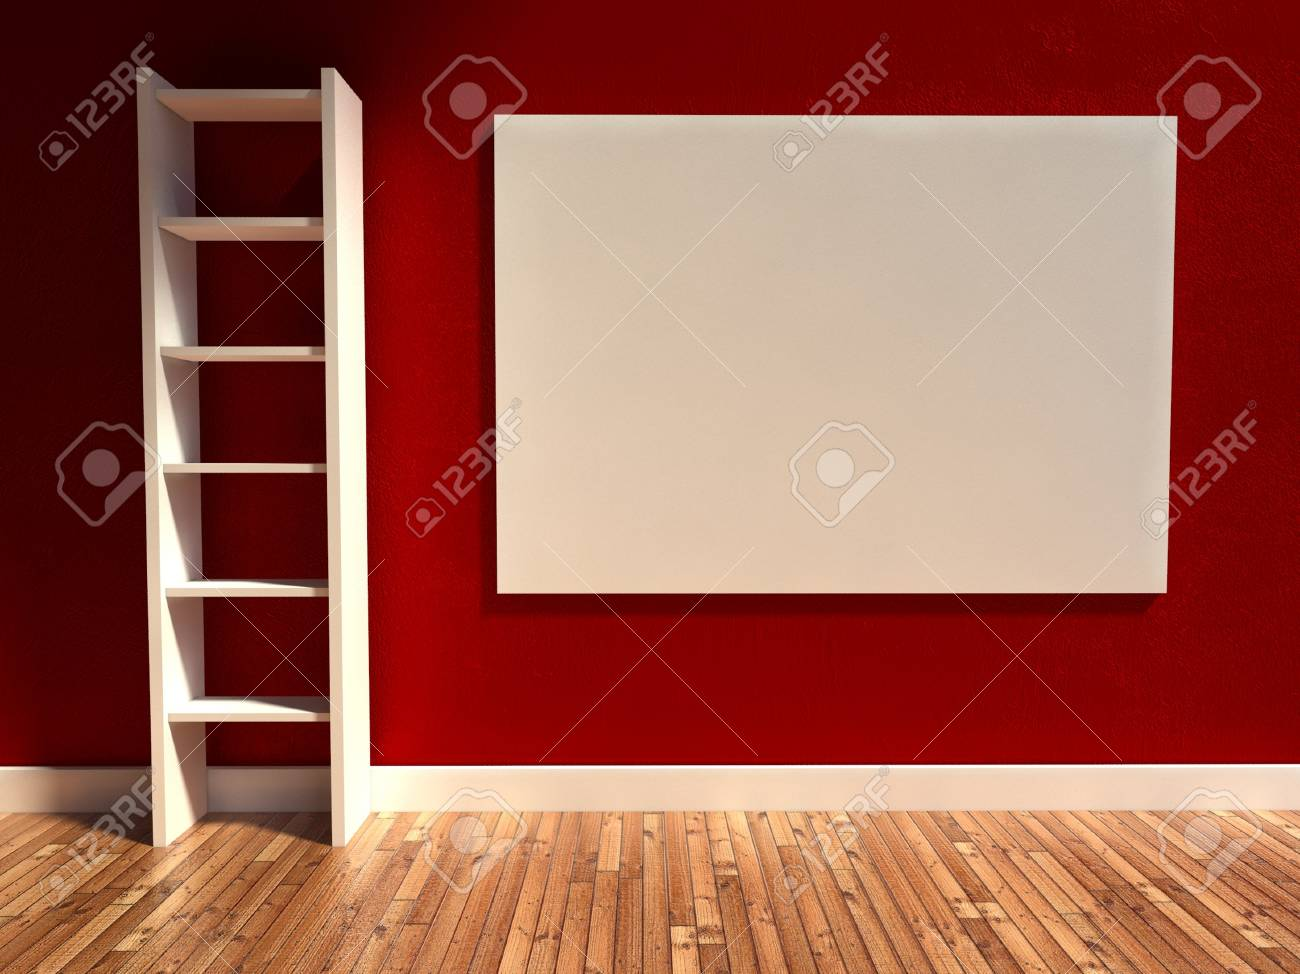 D modern interior empty billboard and shelf stock photo picture